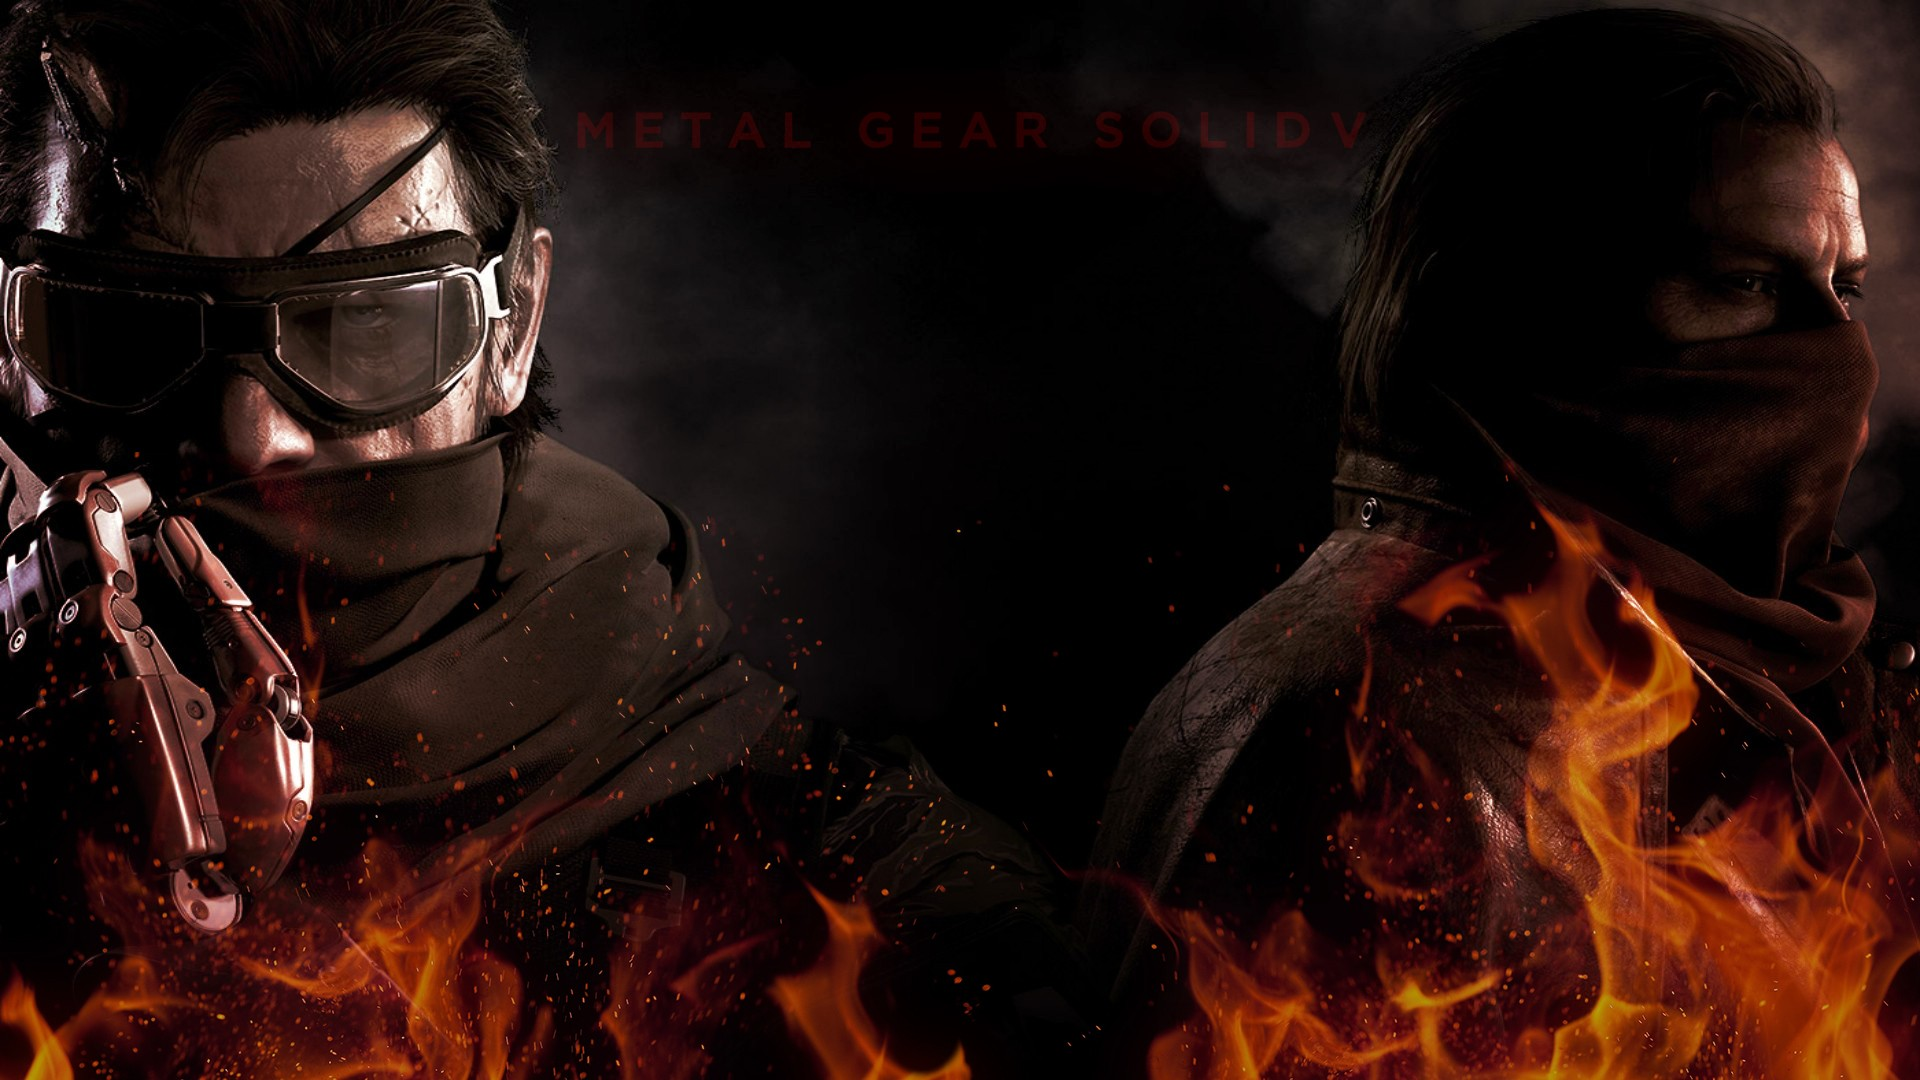 metal-gear-solid-v-the-phantom-pain-fire-viperatedrko